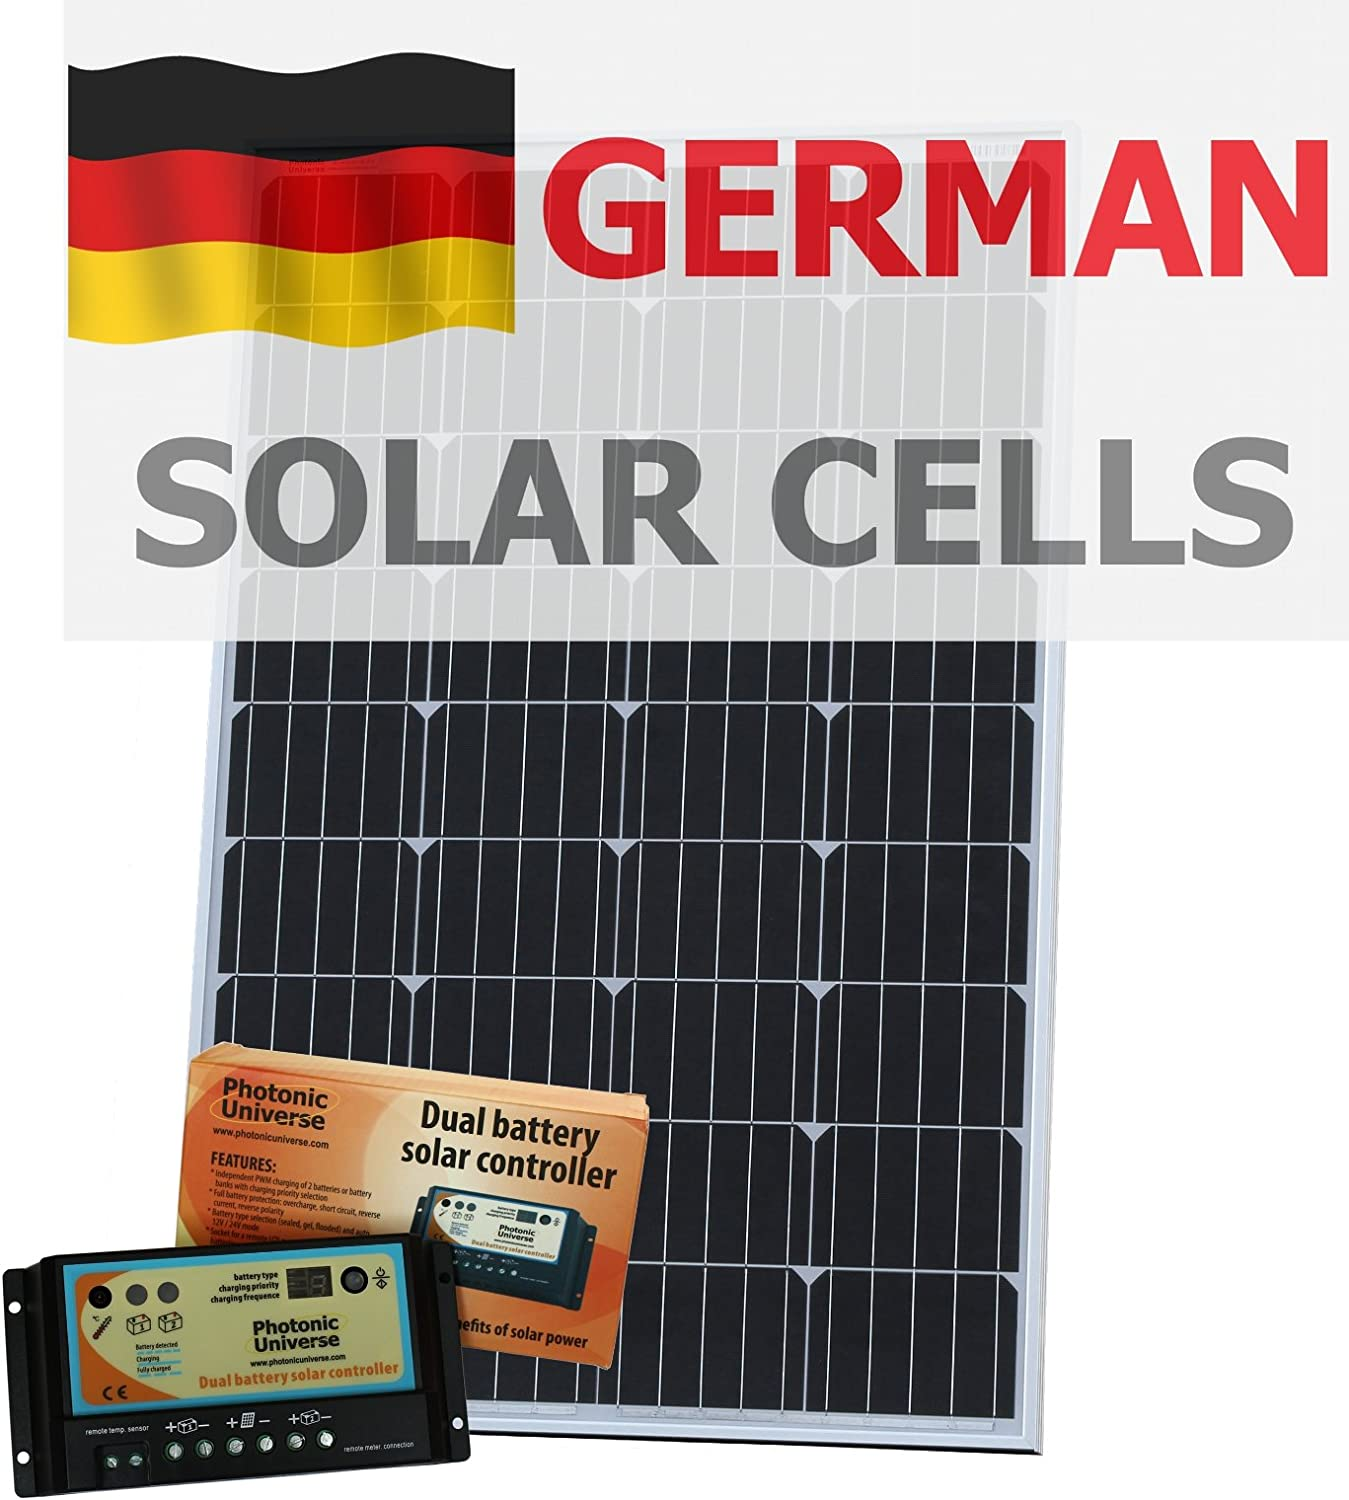 120W 12V Photonic Universe dual battery solar charging kit made of German solar cells with 10A charge controller and 5m cable